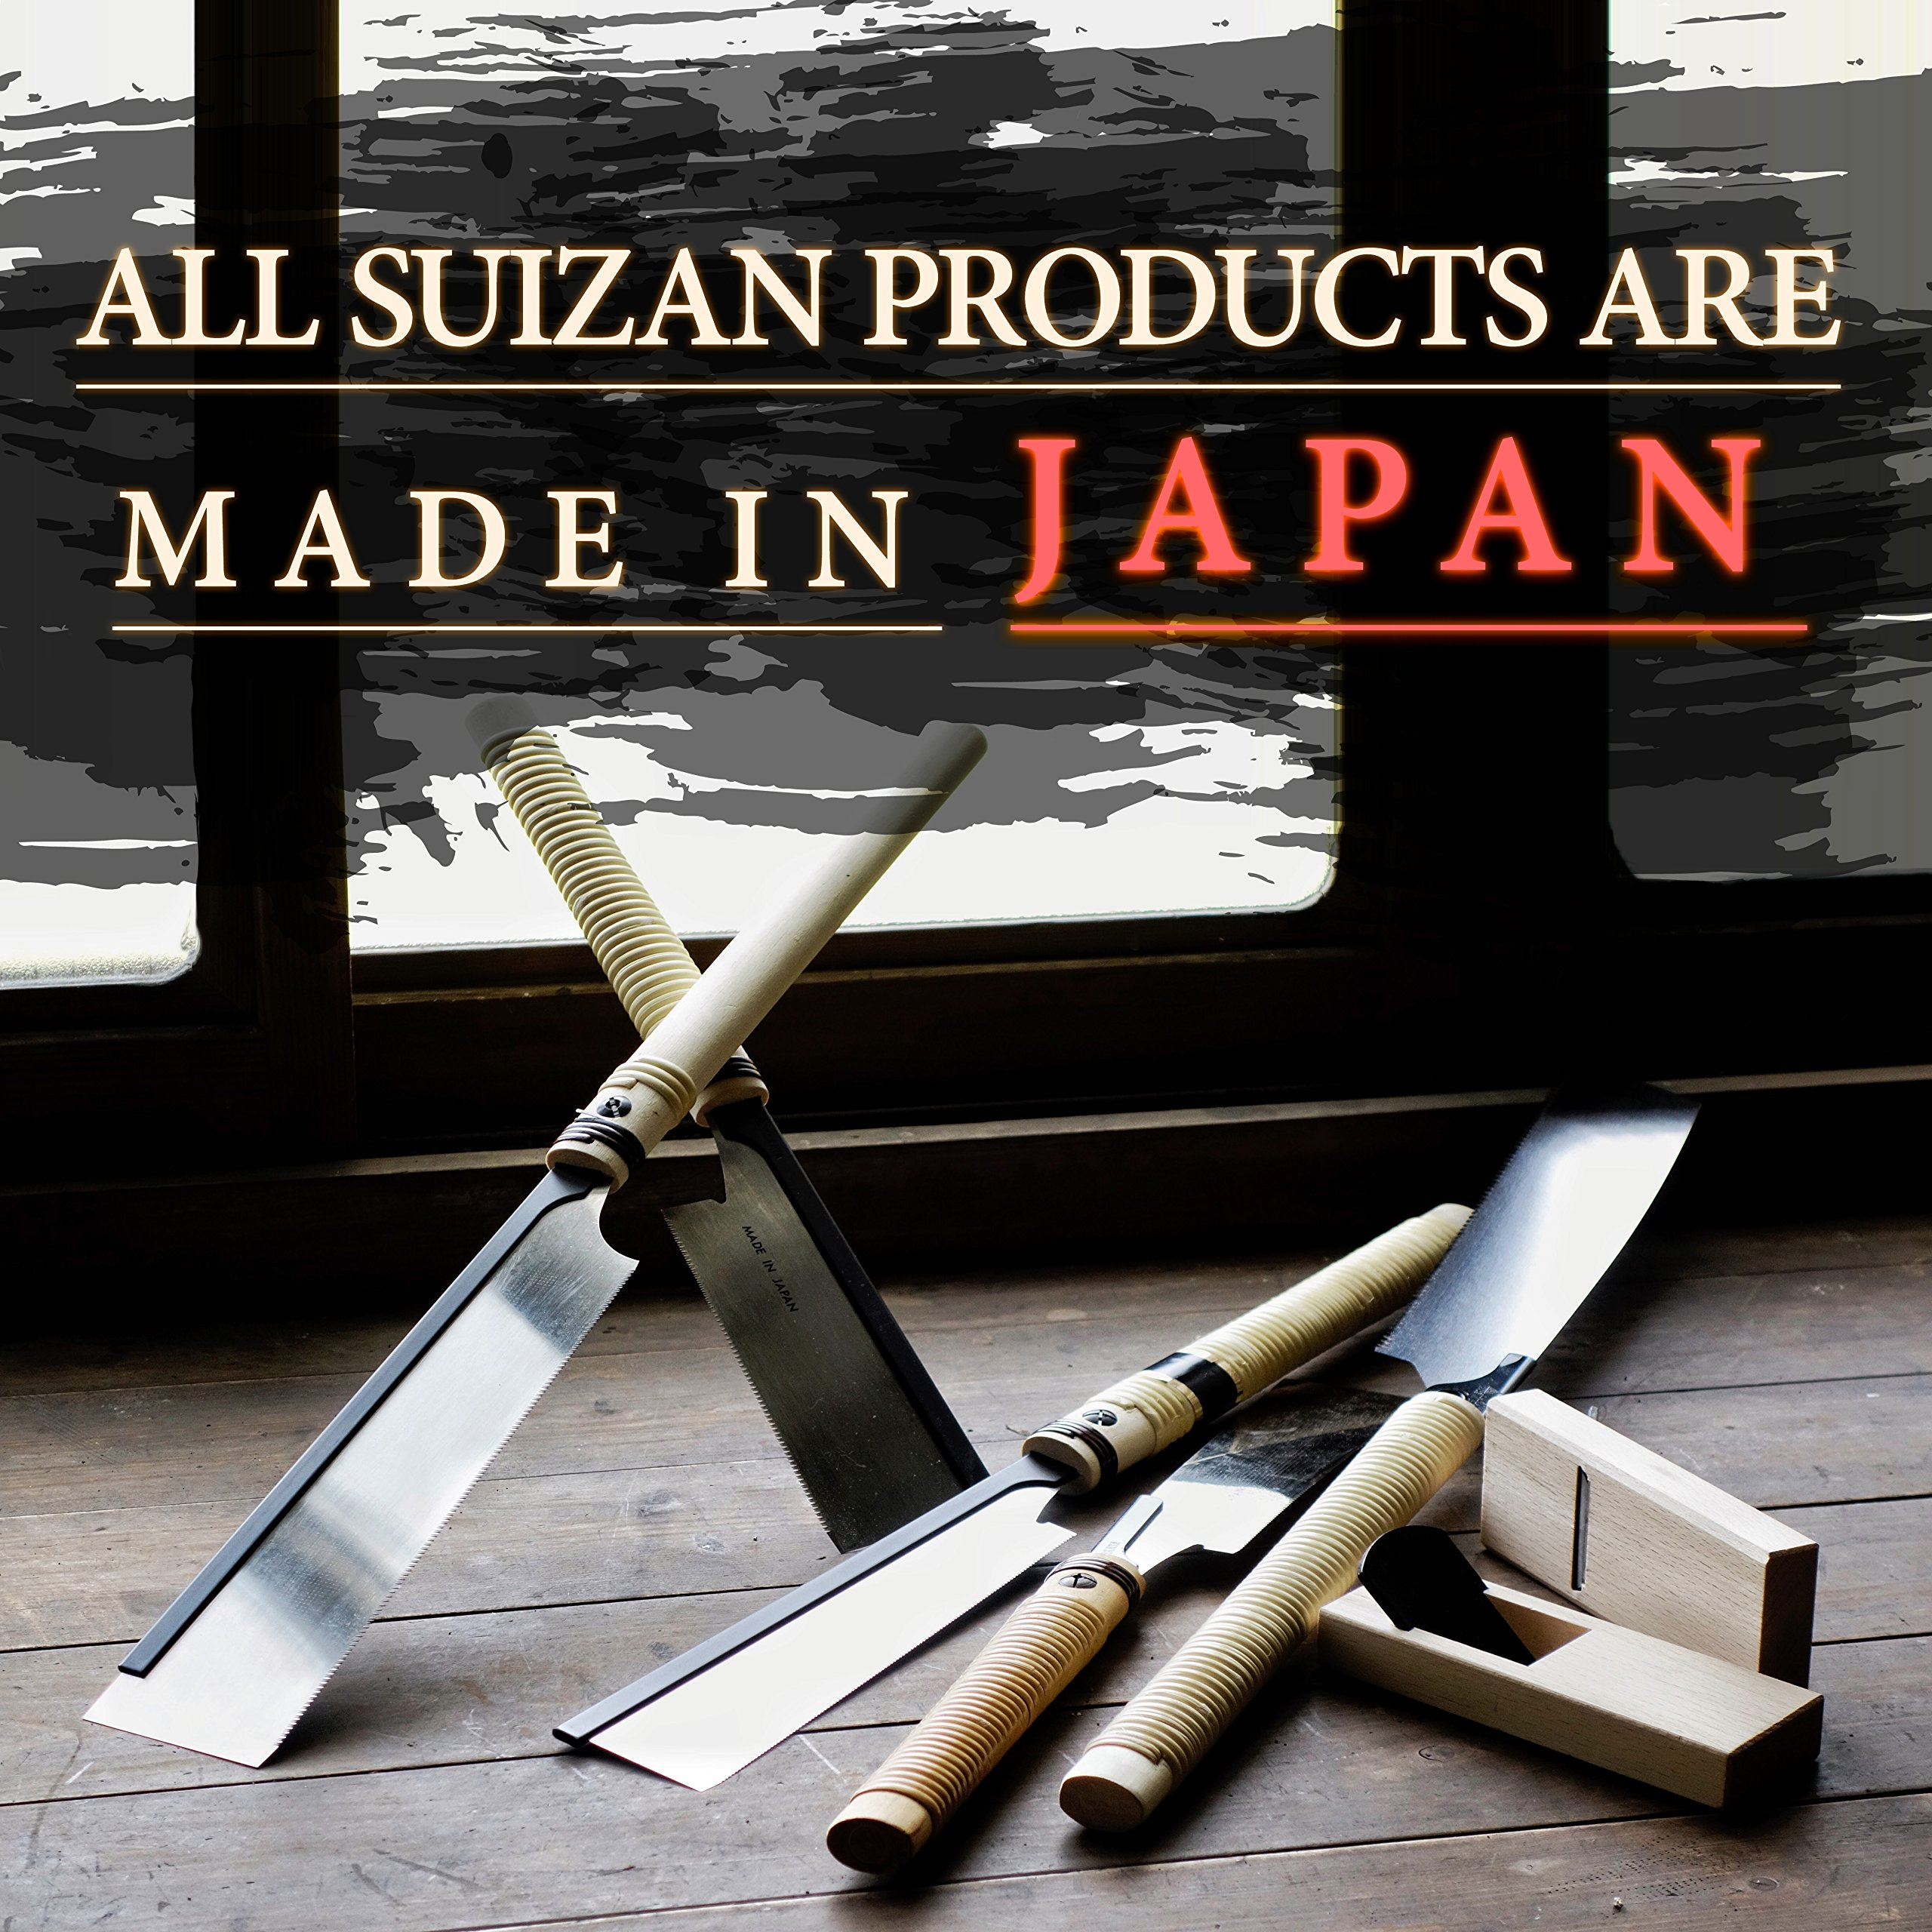 SUIZAN Japanese Hand Saw 8 Inch Ultra Fine Cut Dozuki Dovetail 0.2mm Blade Pull Saw for Woodworking by SUIZAN (Image #4)